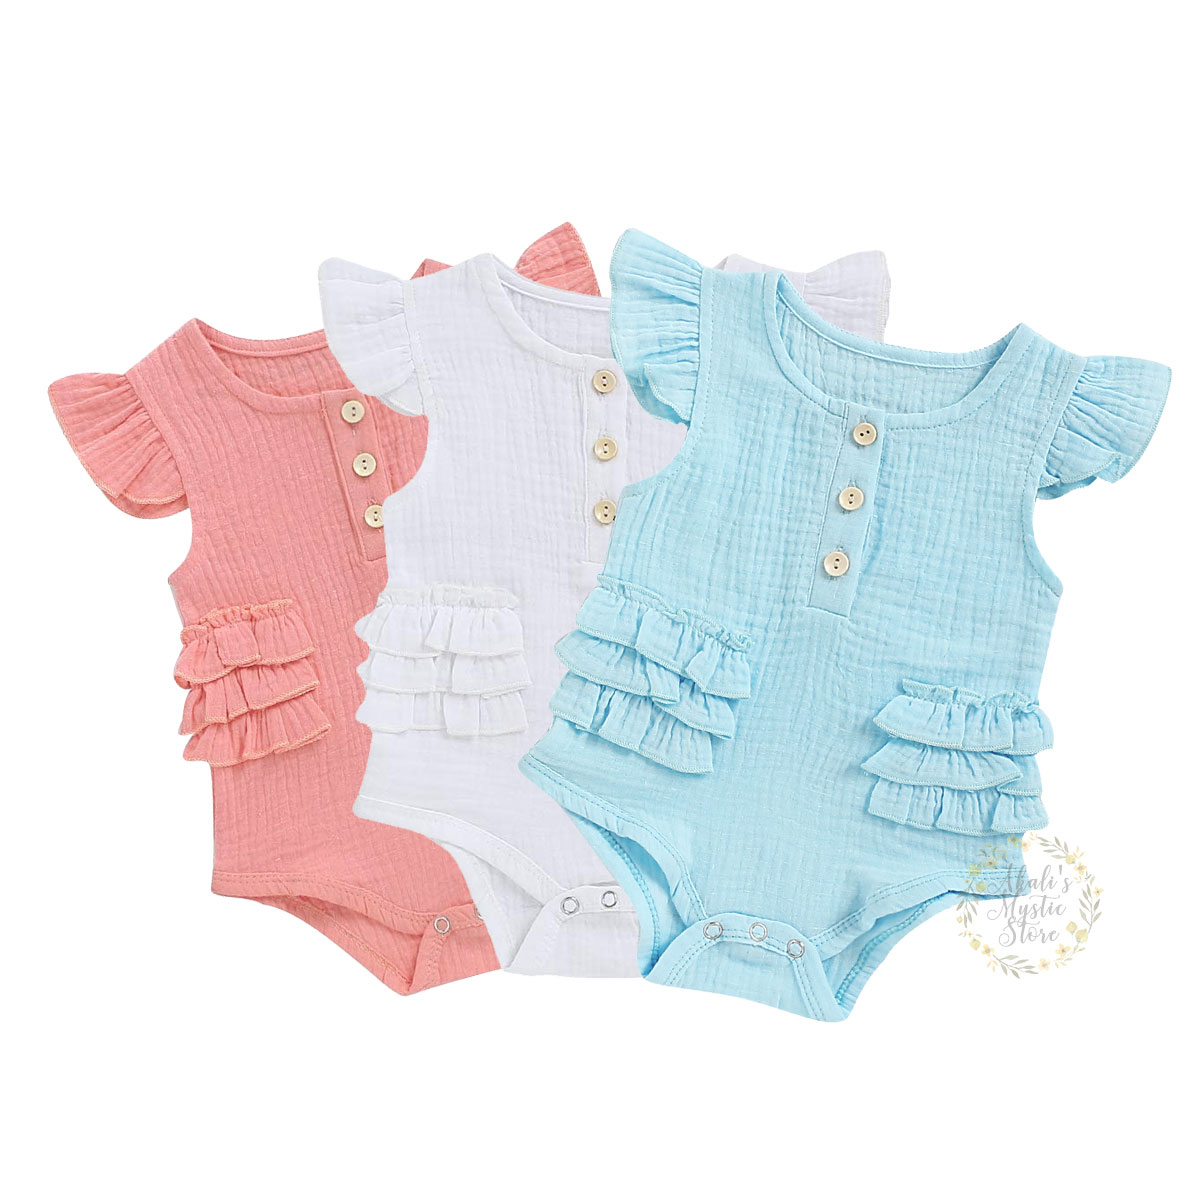 0-18M Newborn Infant Baby Girls Romper Summer Soft Ruffles Baby Jumpsuit Solid Playsuit Sunsuit Cute Baby Girl Costumes